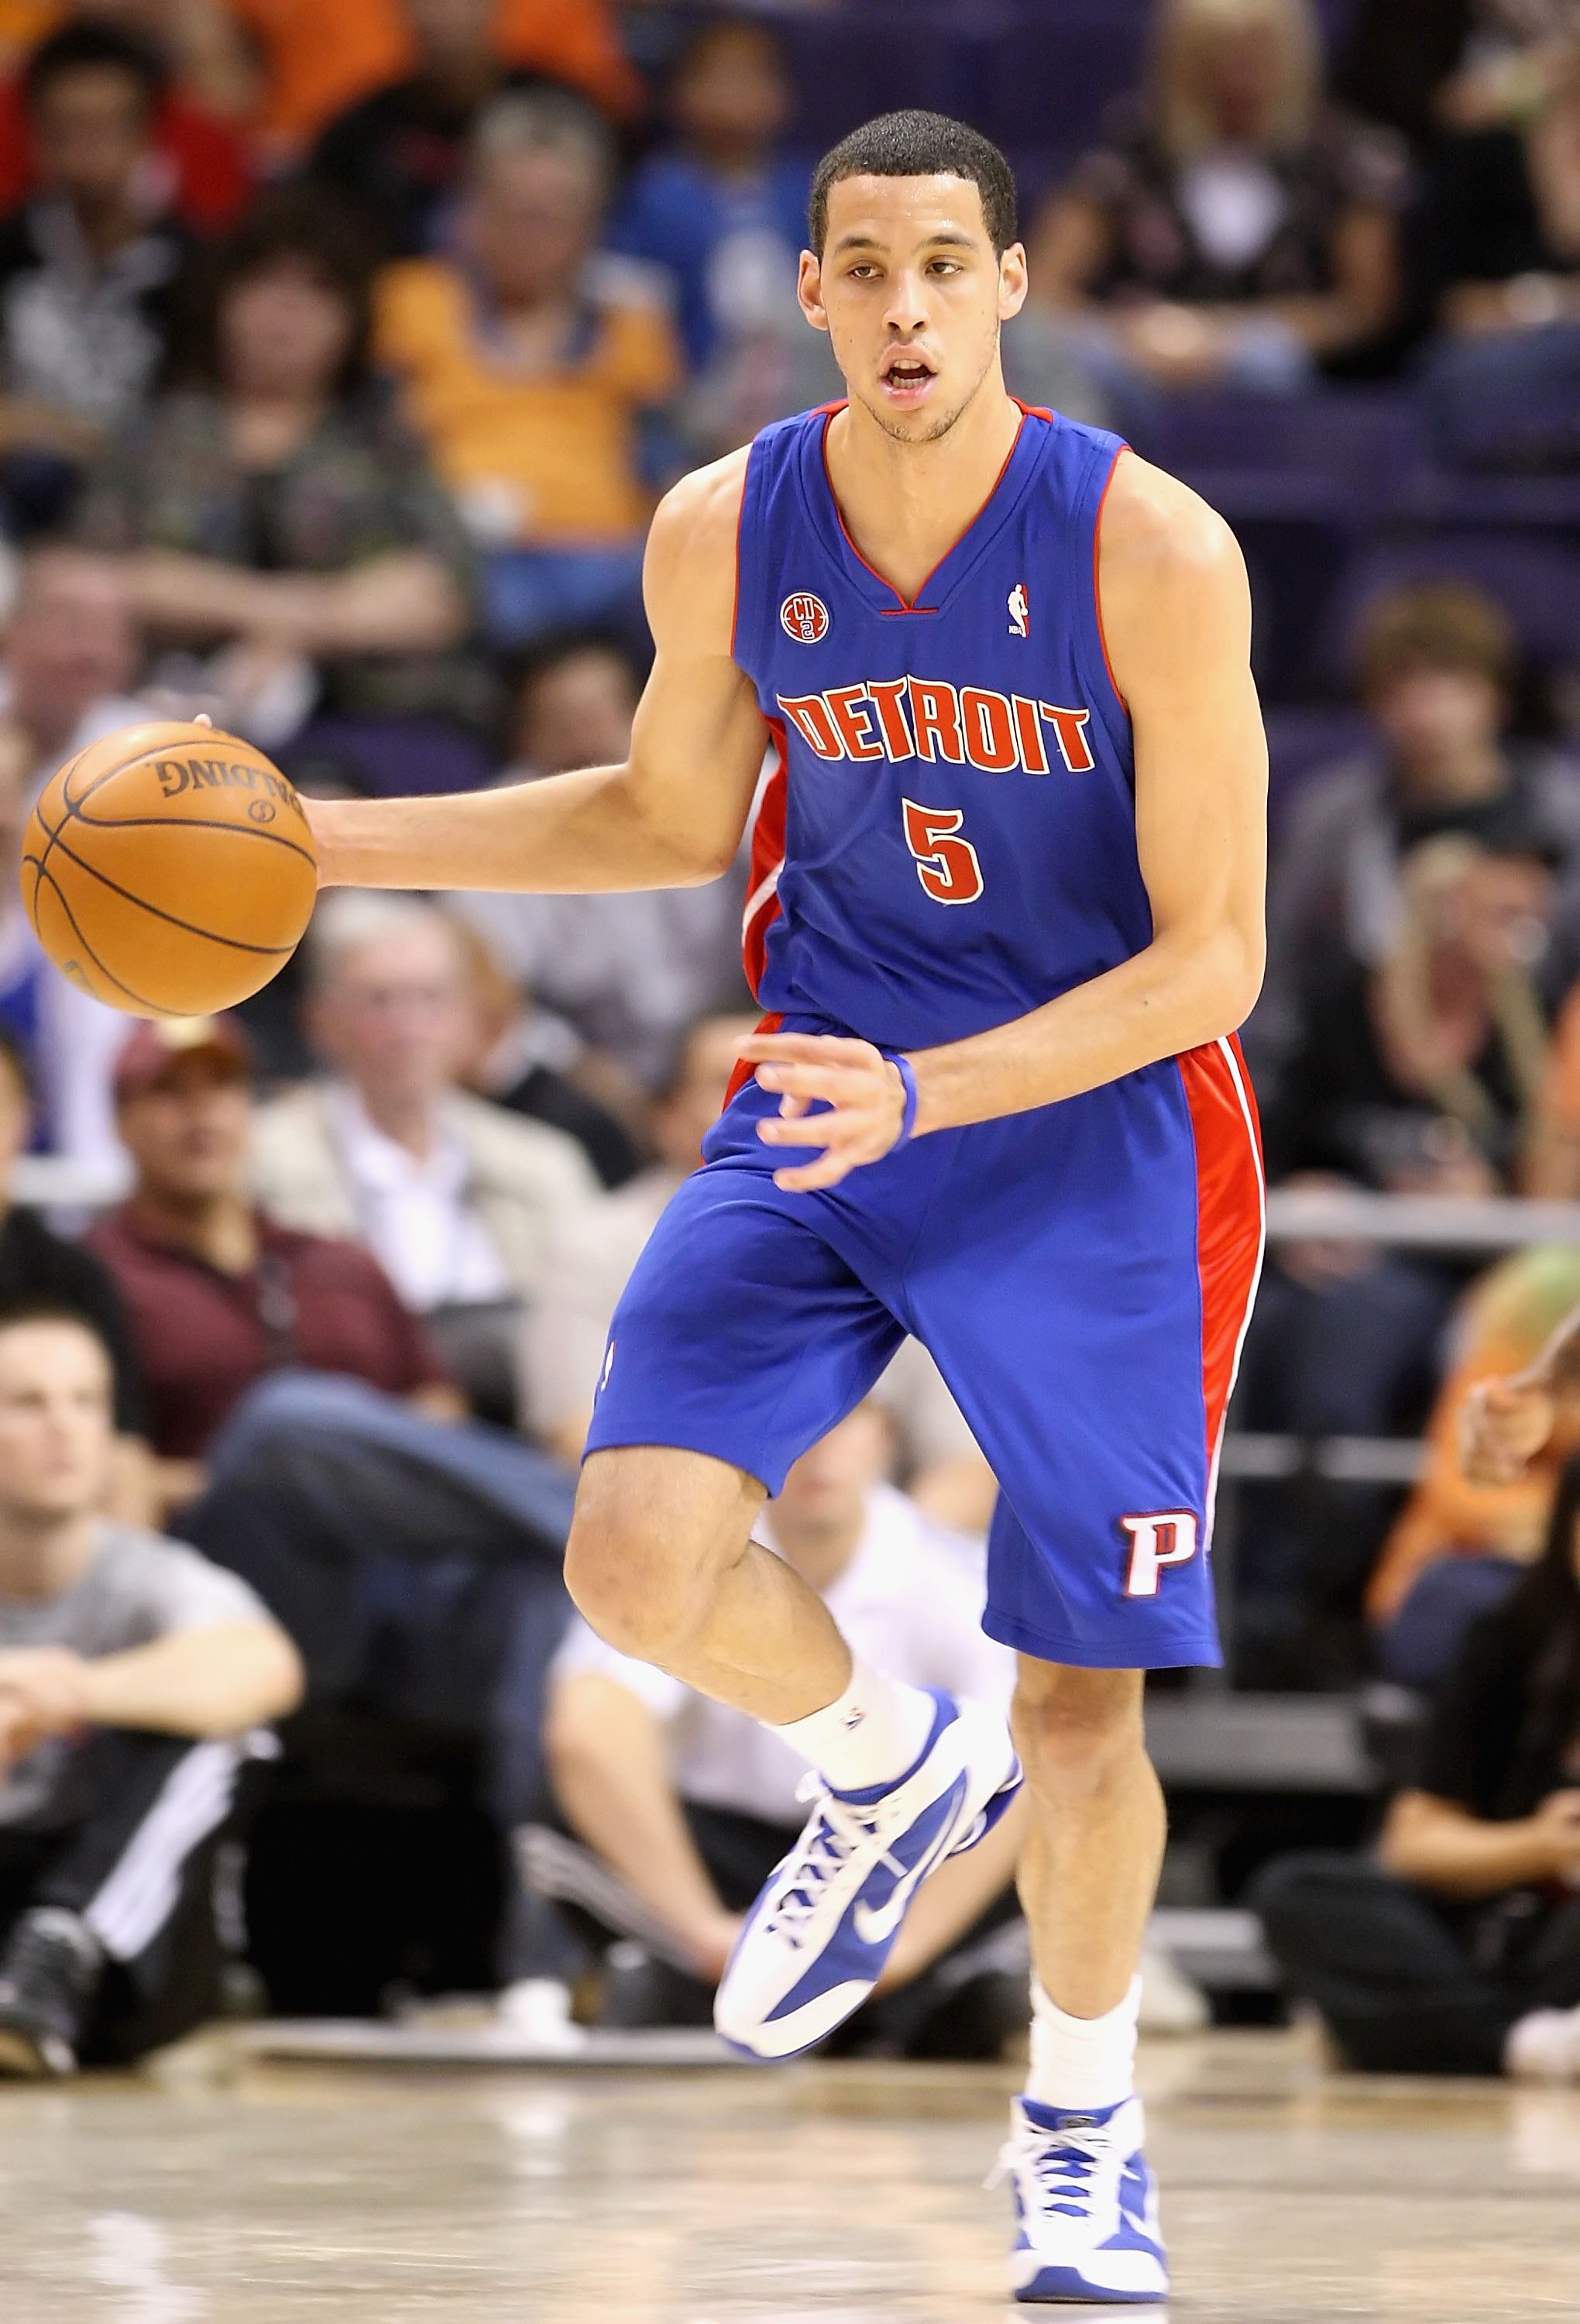 PHOENIX - NOVEMBER 22:  Austin Daye #5 of the Detroit Pistons handles the ball during the NBA game against the Phoenix Suns at US Airways Center on November 22, 2009 in Phoenix, Arizona. The Suns defeated the Pistons 117-91.  NOTE TO USER: User expressly